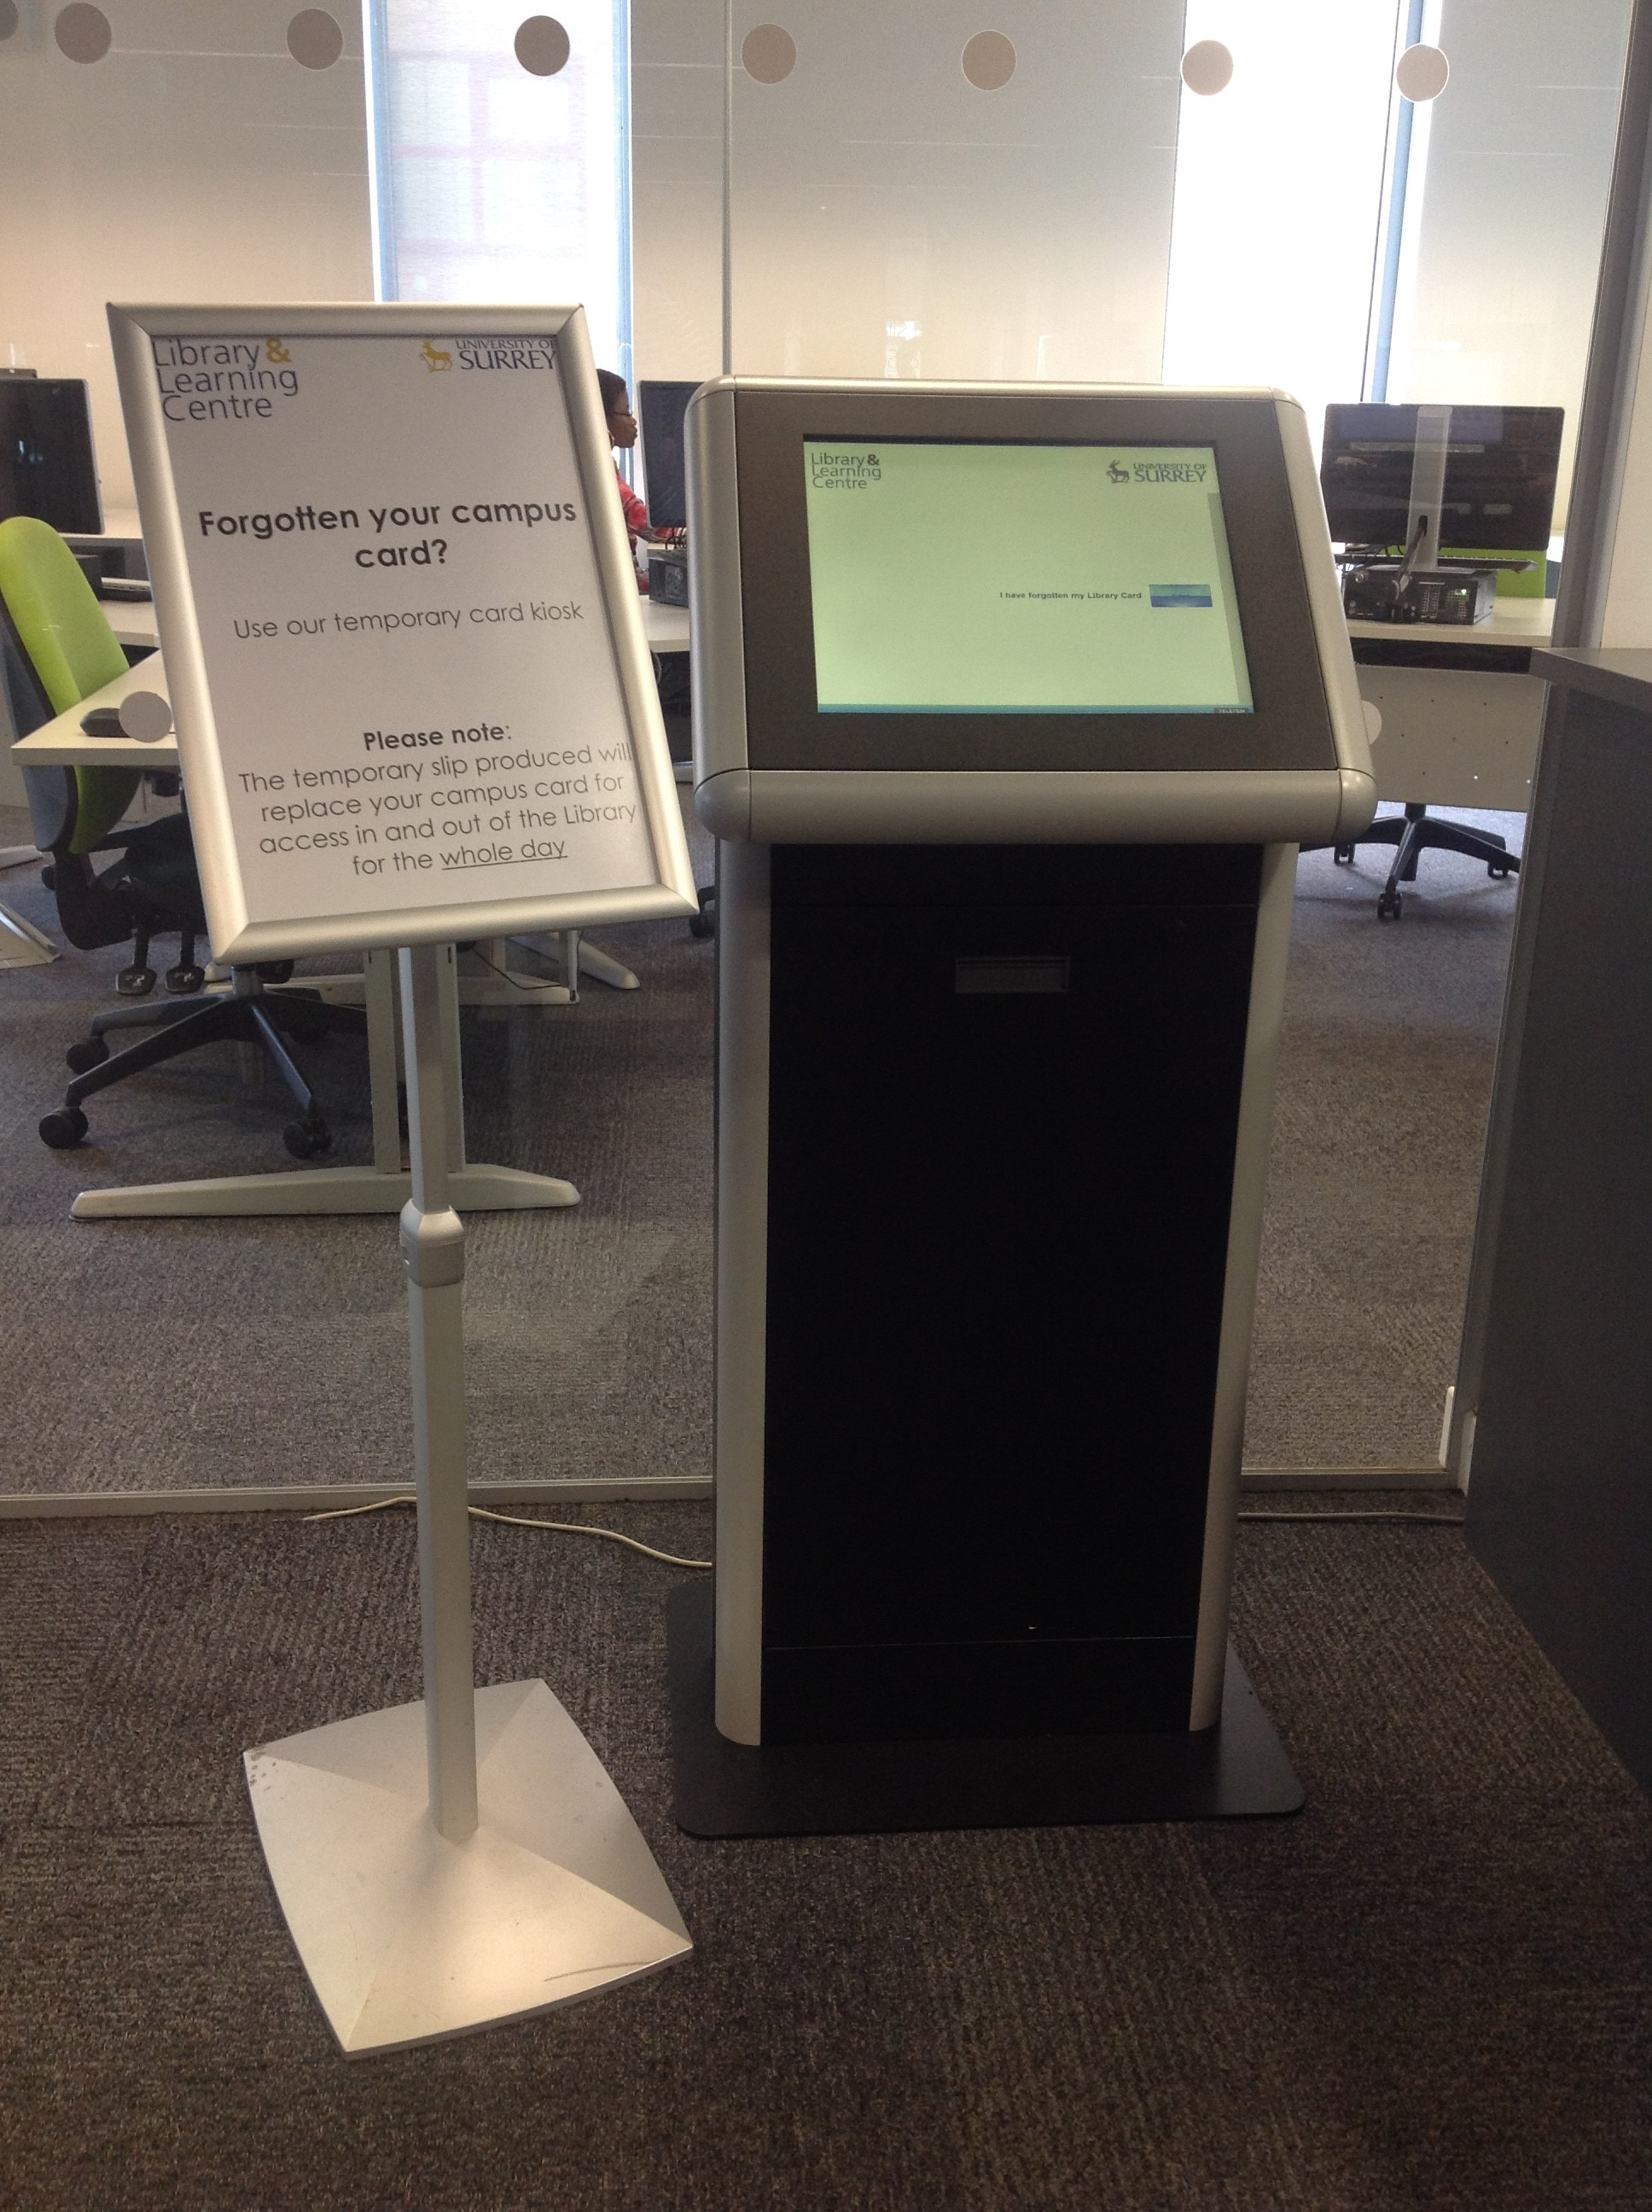 Forgotten your card? Use our new DIY card kiosk! | Library News